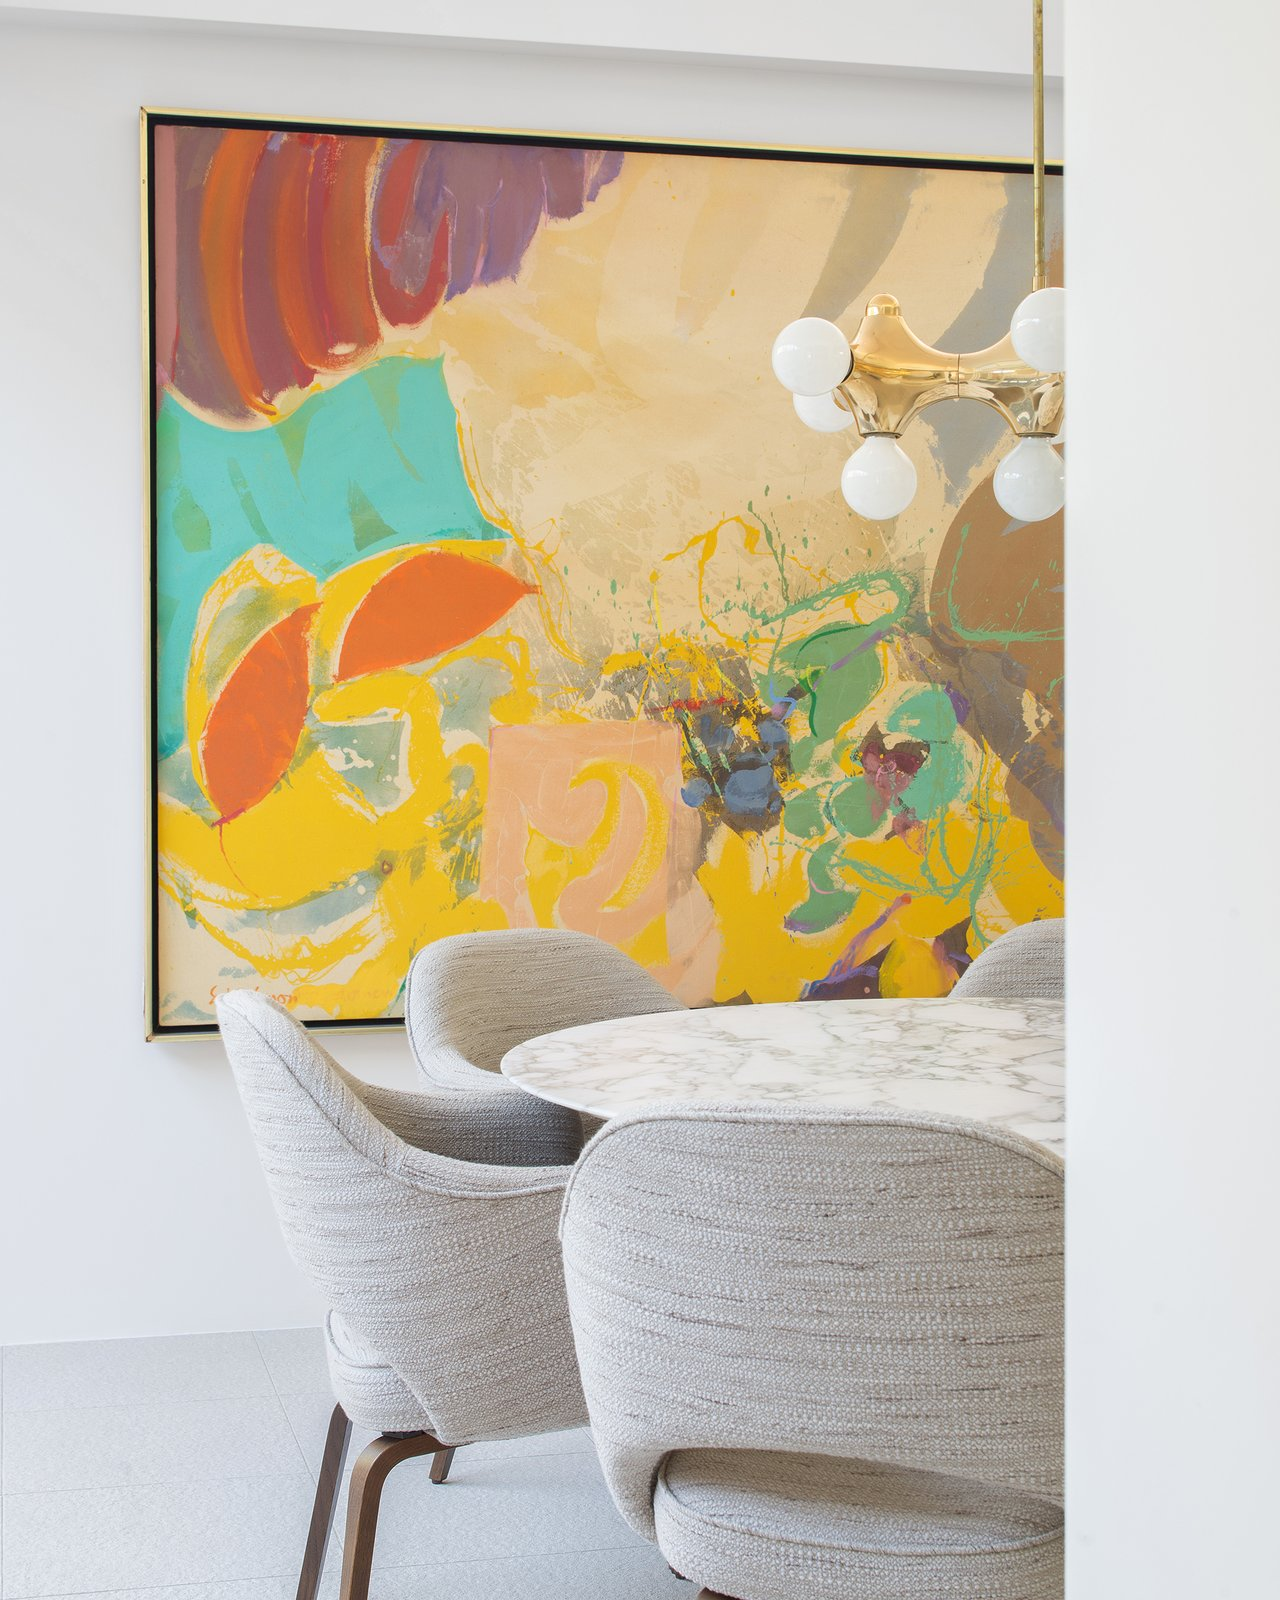 Throughout the day, the home is bright, airy and breezy, guided by both the architecture and the interior design. Ellen Hanson Designs appointed the home with furnishings that range between rich, colorful art and muted modern furniture.  The Pavilion House by Seamus Payne